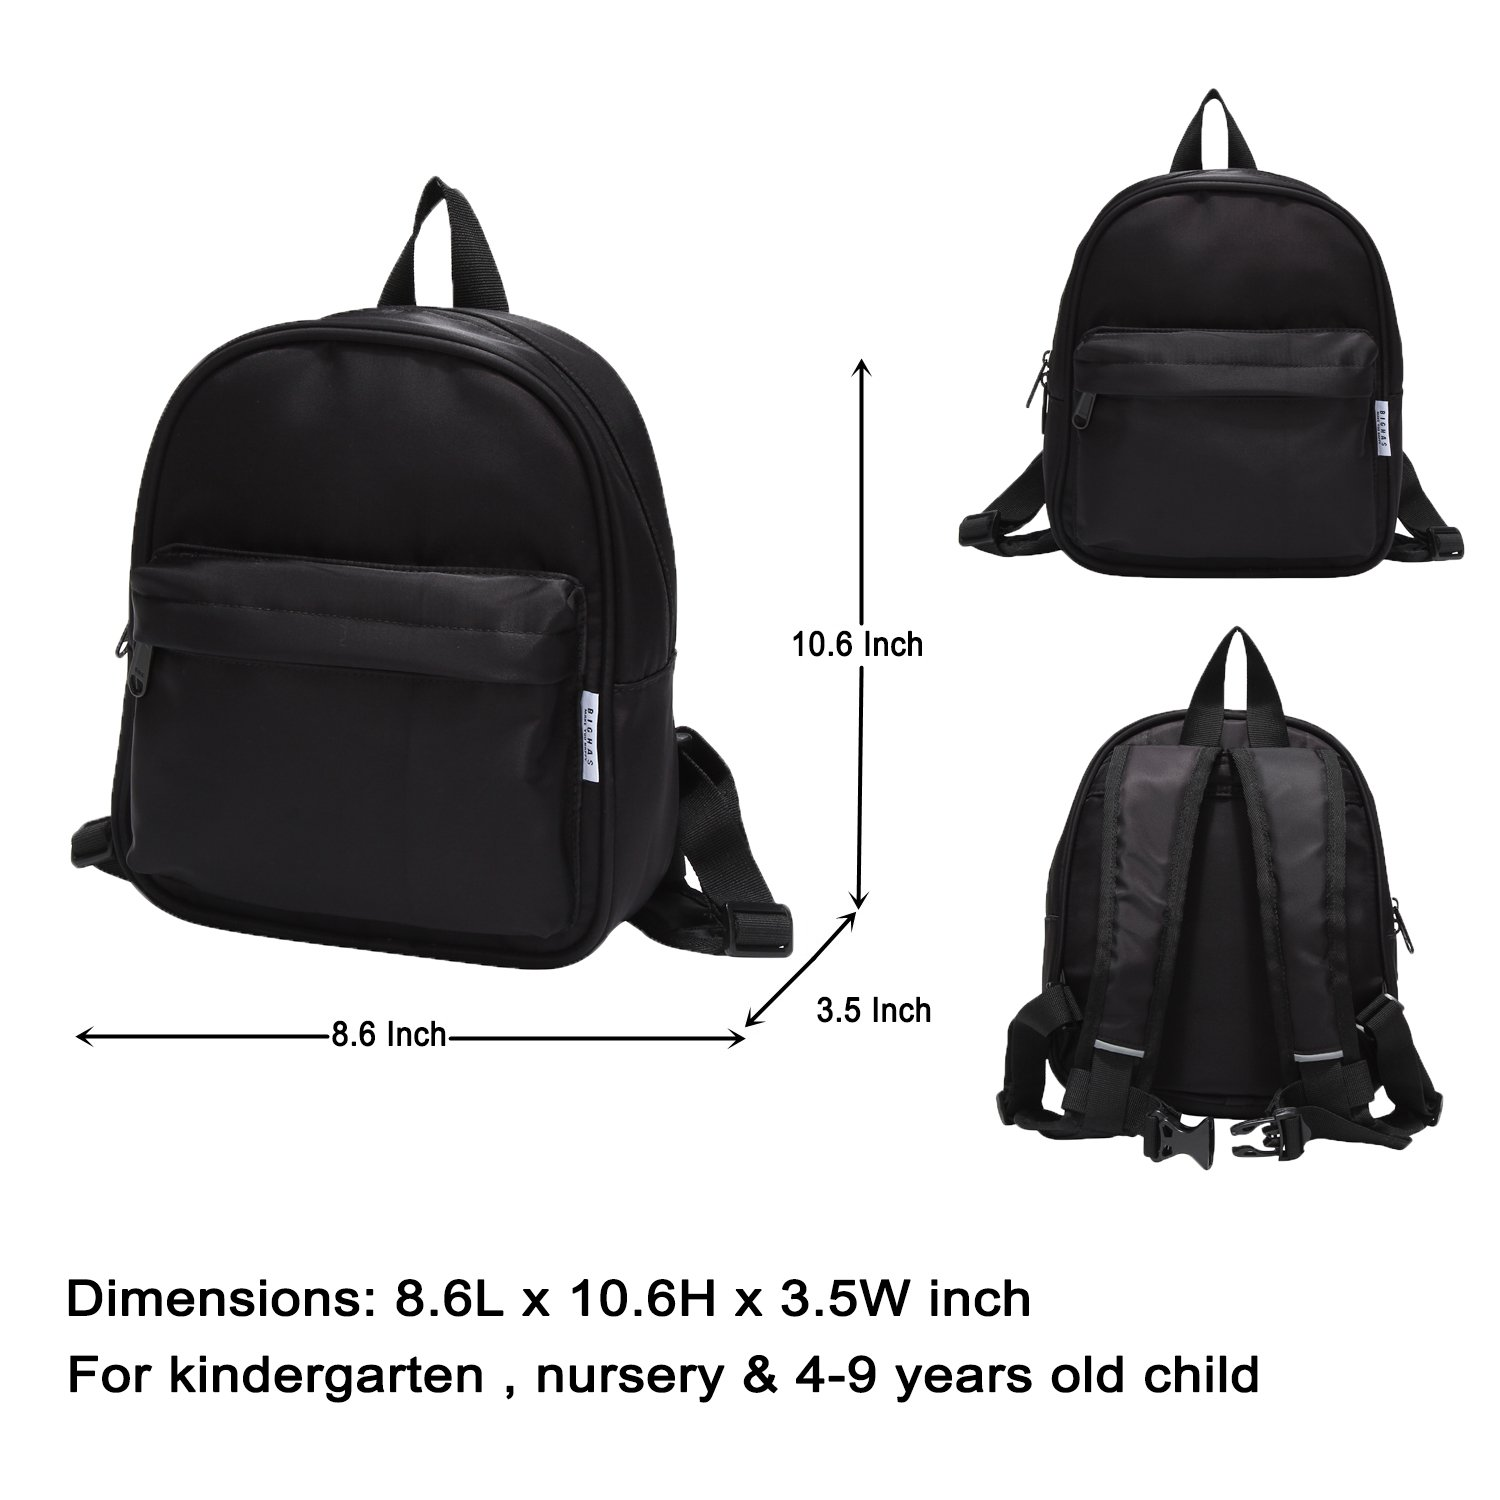 93e801d42e BIGHAS Lightweight Mini Kids Backpack for Preschool Kindergarten Boys and  Girls with Chest Strap 3-6 Years Old (Black)  Amazon.co.uk  Clothing